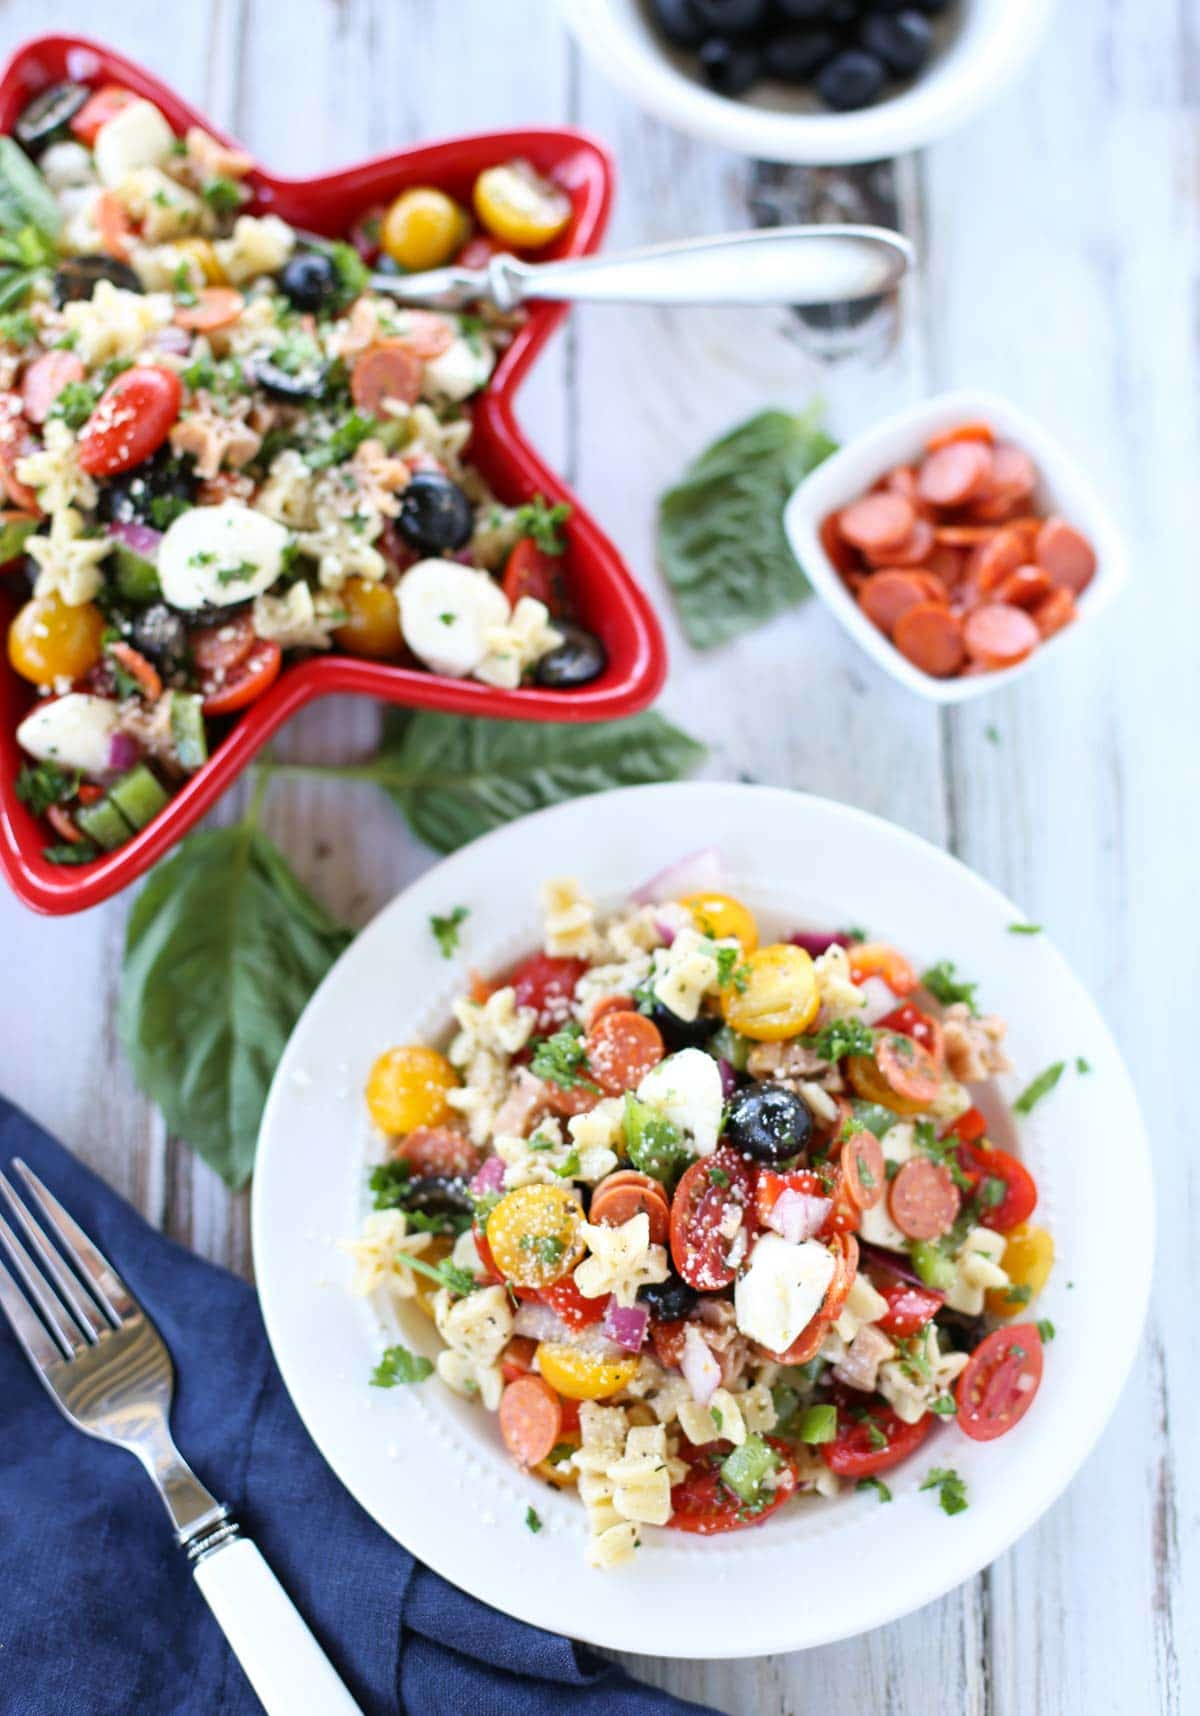 Supreme Pizza Pasta Salad   Delish combo of your favorite pizza ingredients! A simple side dish to any summer menu. Yum! The vinaigrette dressing ties it all together!   WorldofPastabilities.com